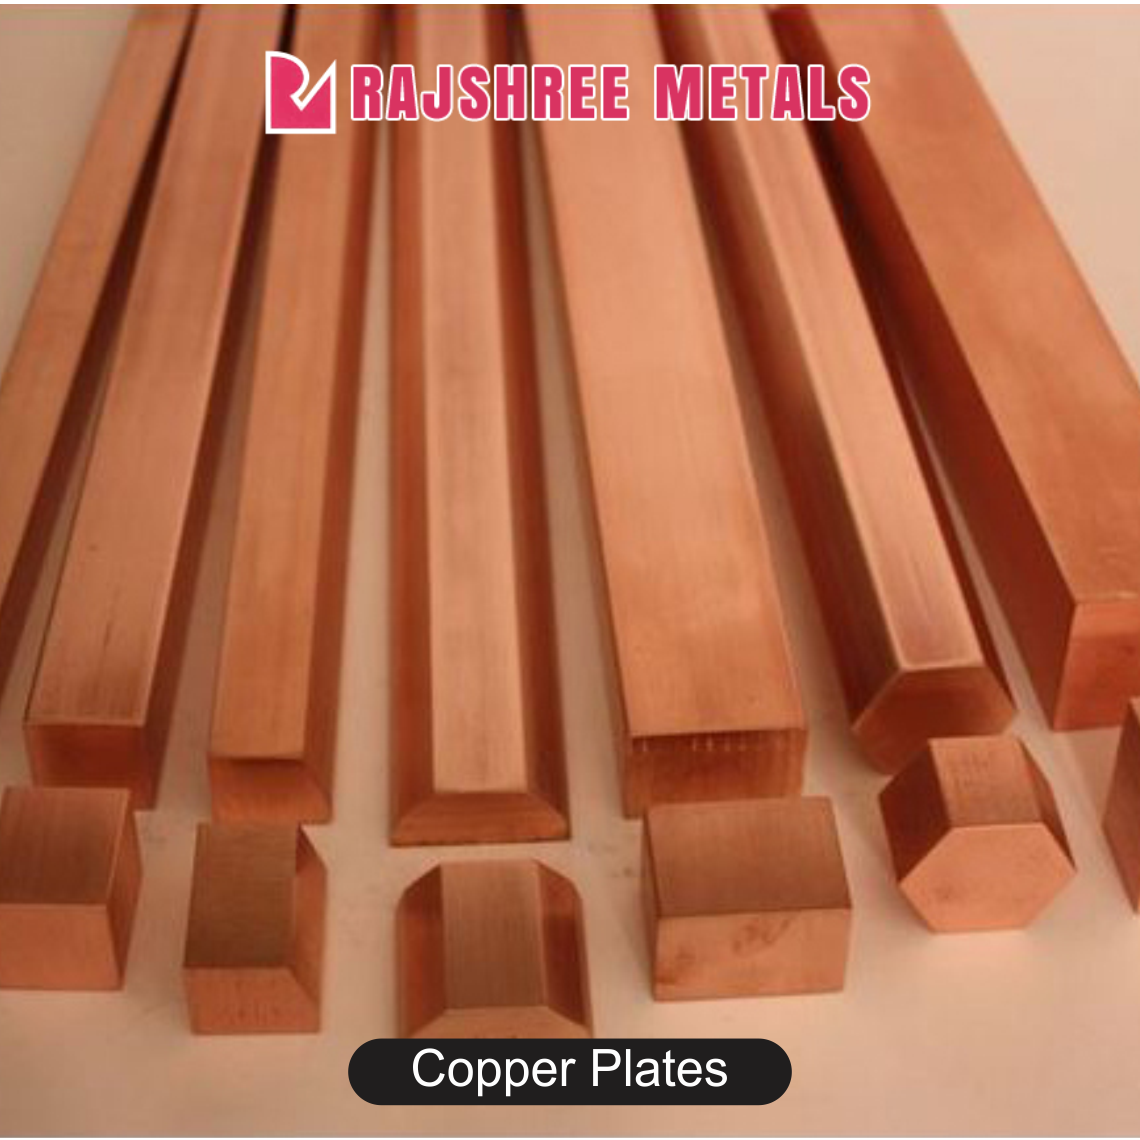 Copper Plates We Are Enlisted Amidst The Preminent Copper Metal Plates Dhp Etp Suppliers In India Rajshreemetals Copperpl Copper Metal Copper Plated Dhp